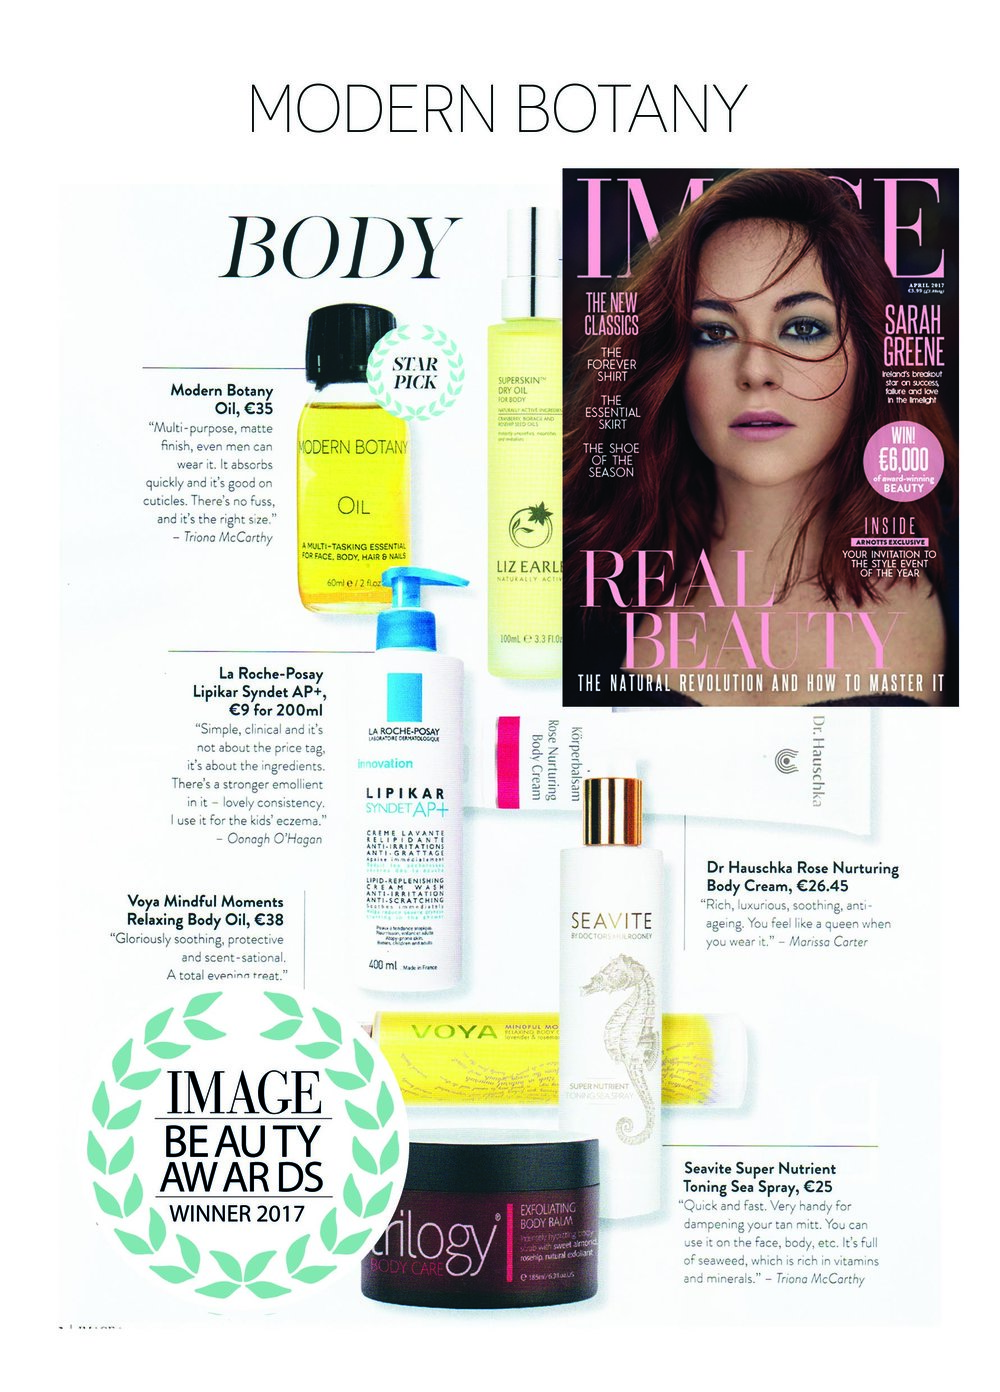 Image Beauty Award April 2017